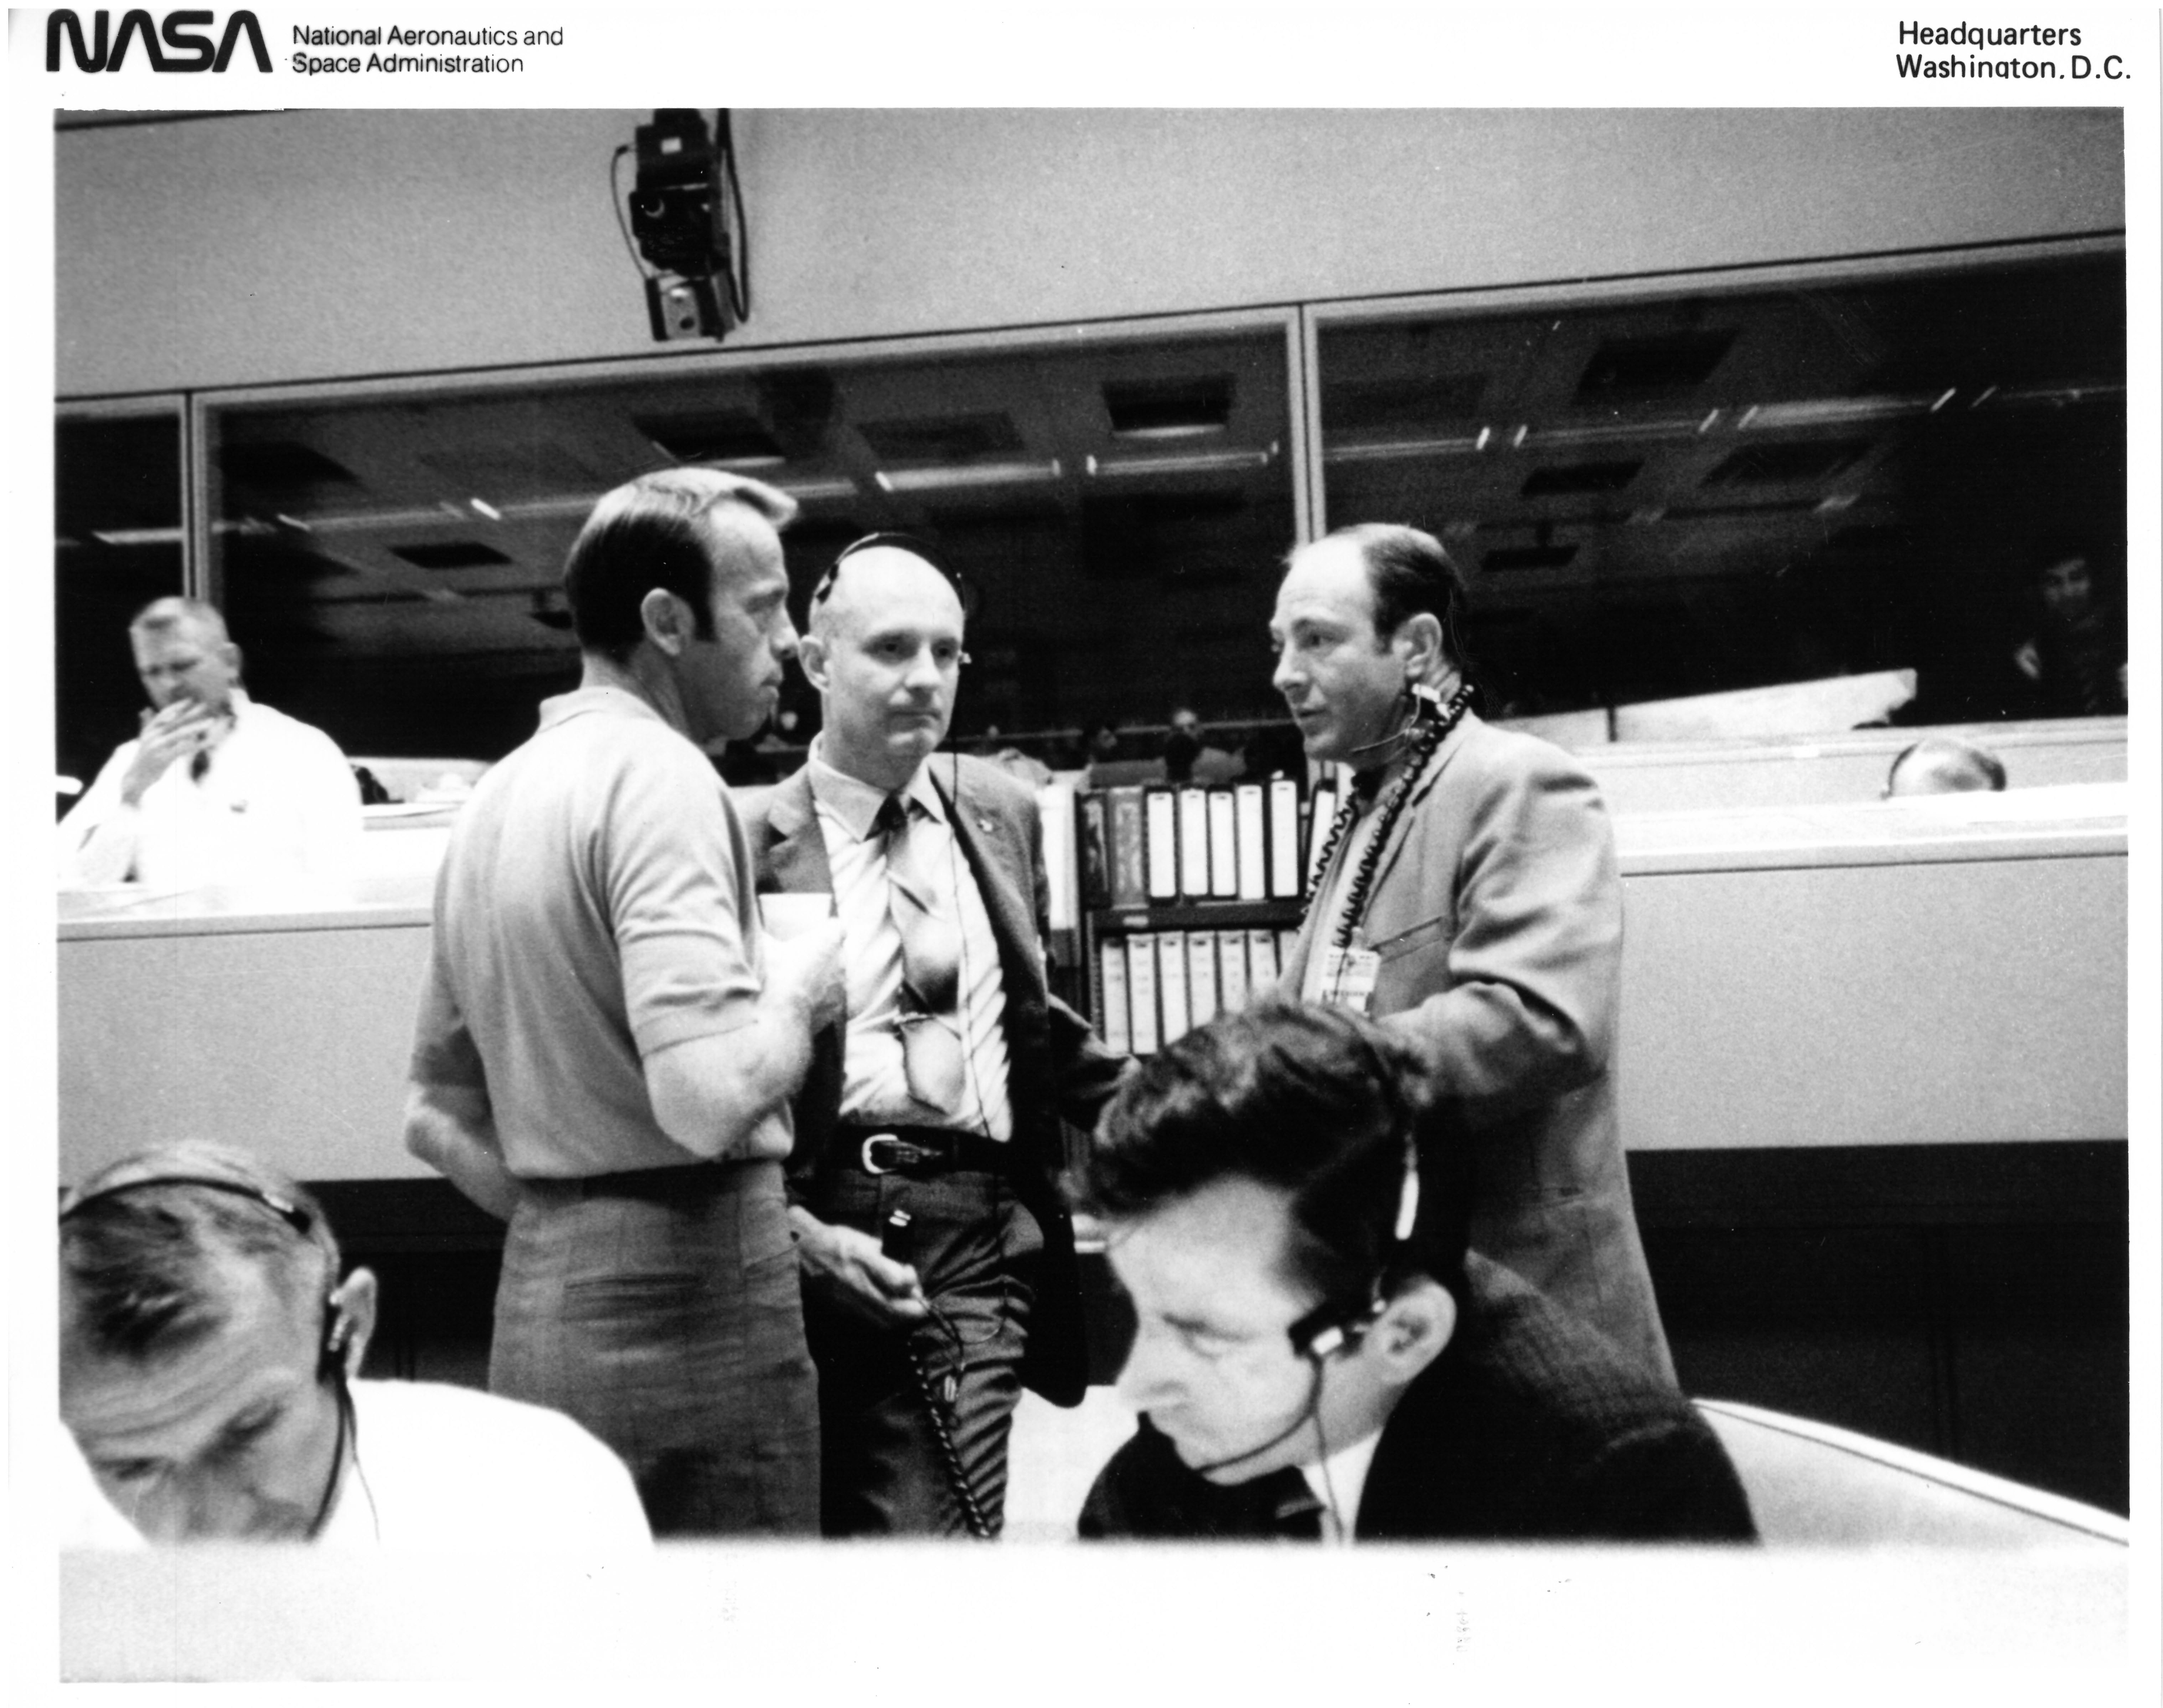 At Mission Control During Apollo 13